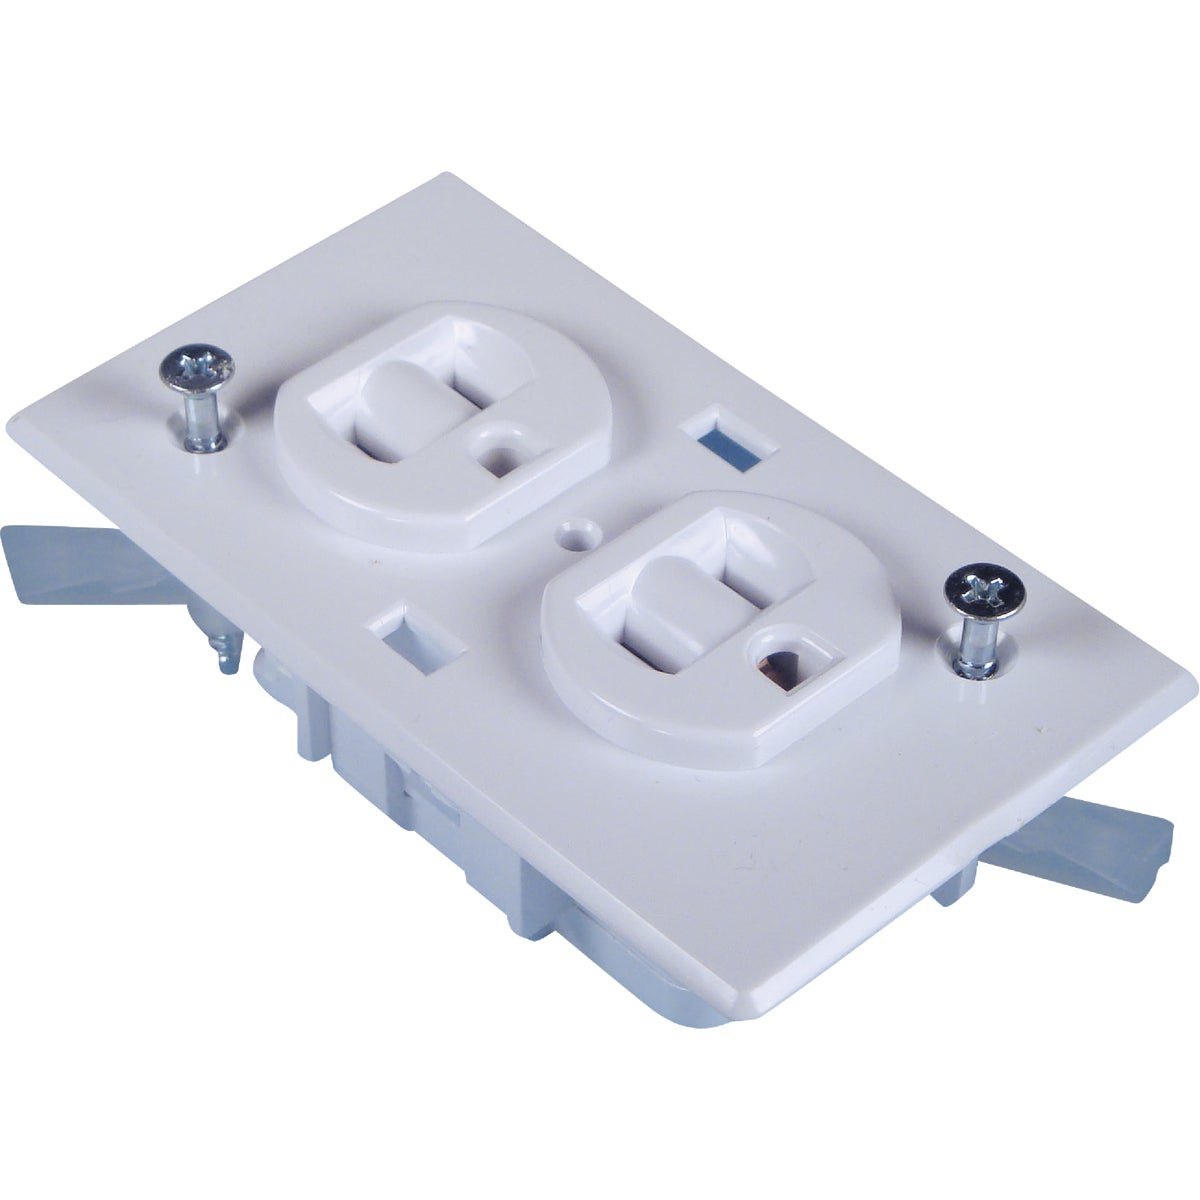 WHT DPLX RECEPTACLE - E-162C by U S Hardware